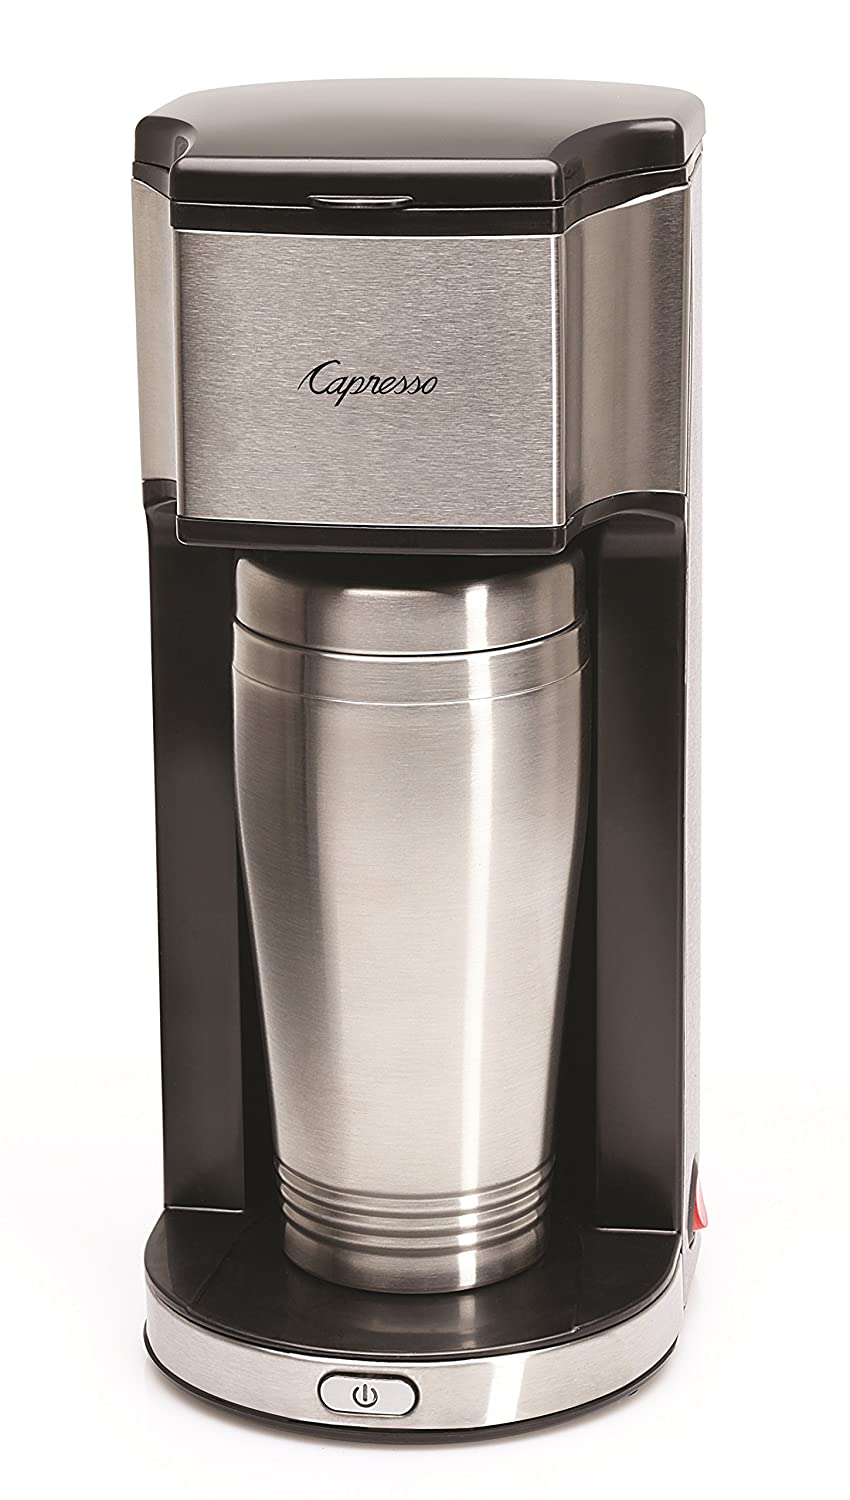 Capresso 425 On-the-Go Personal Coffee Maker, Silver Black